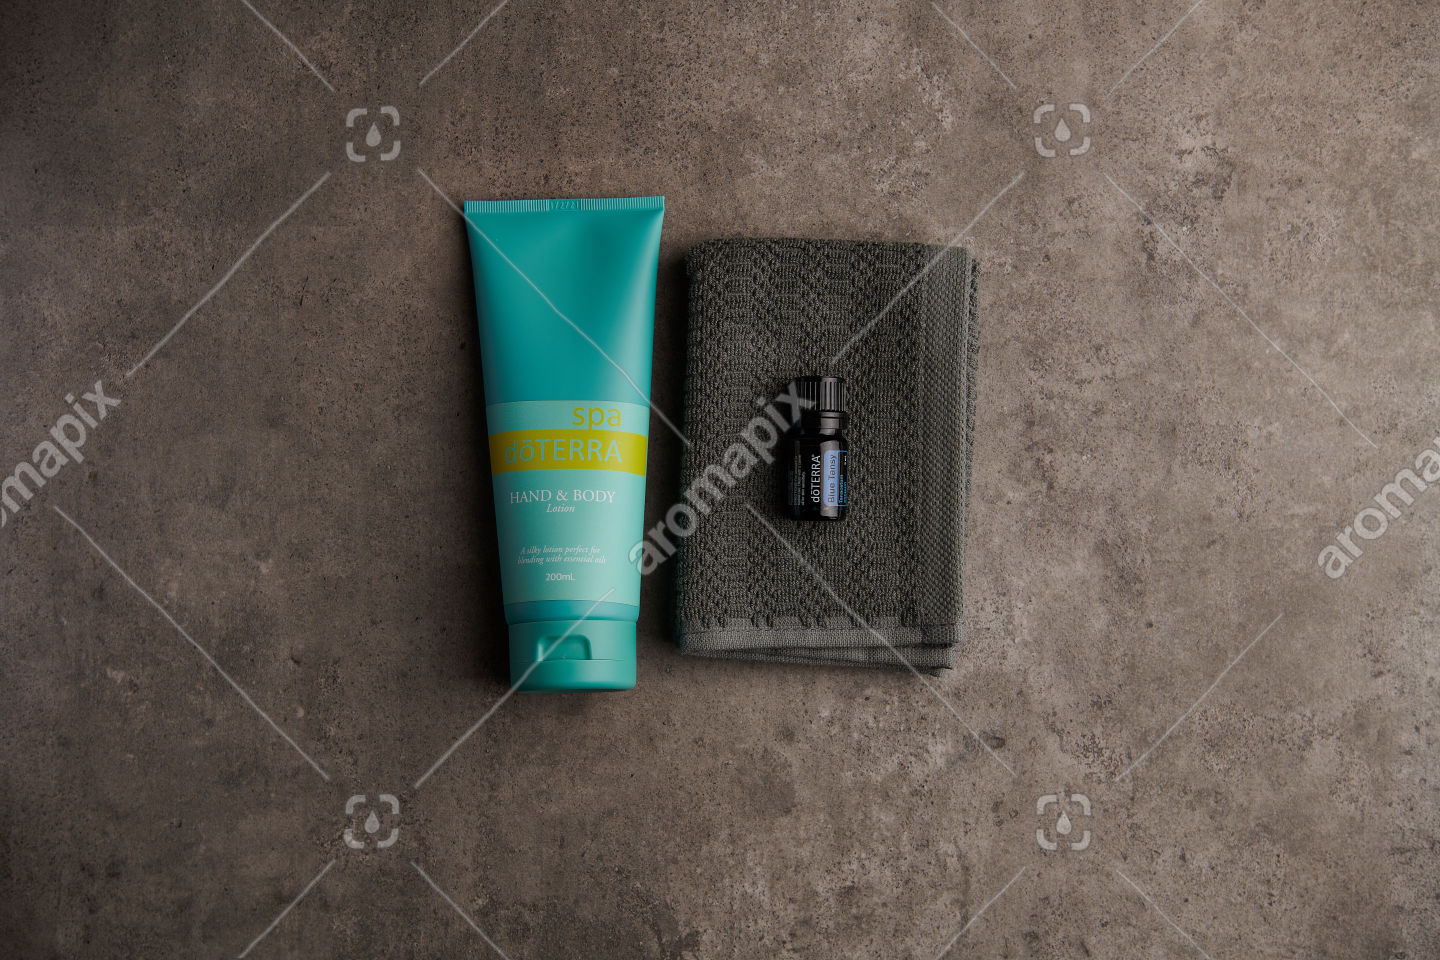 doTERRA Spa Hand and Body Lotion and Blue Tansy essential oil on stone